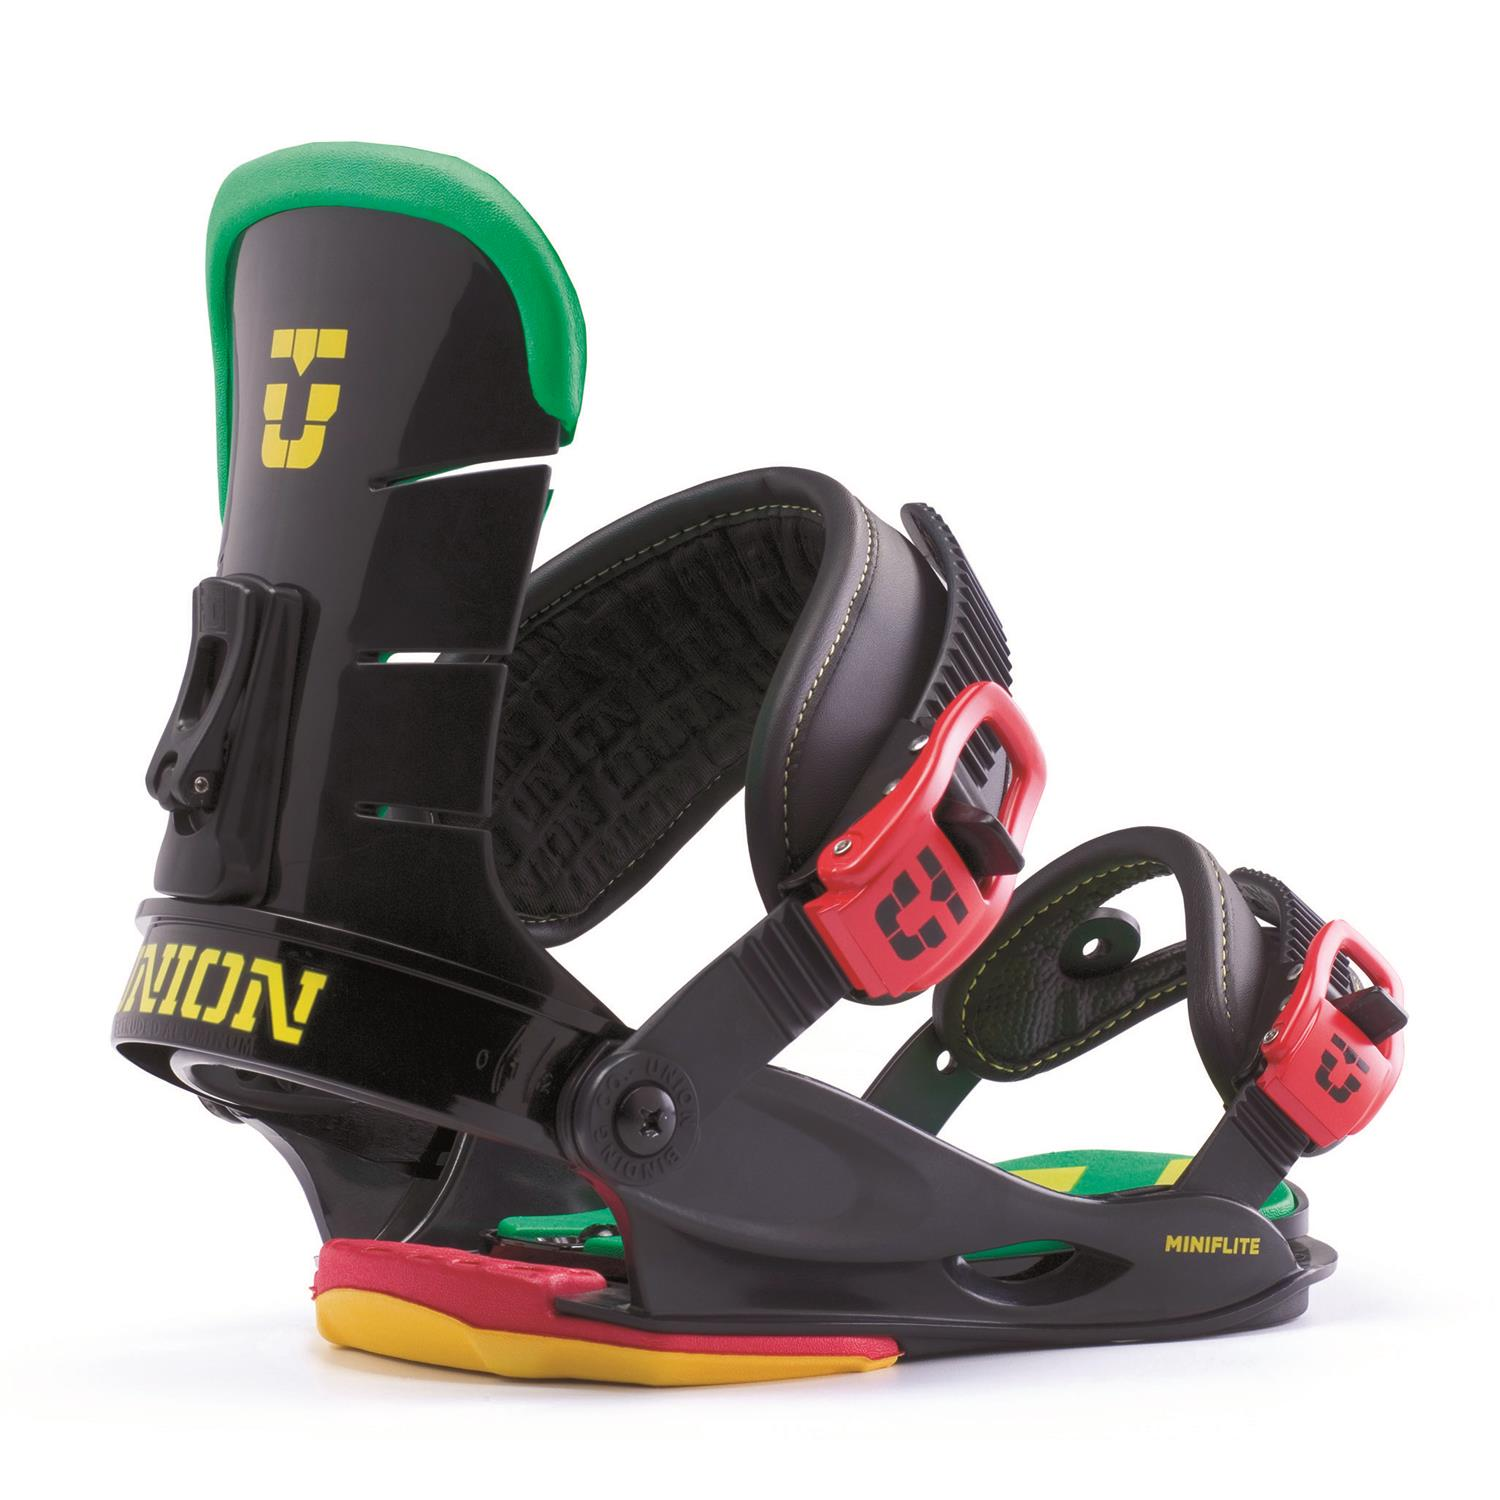 CAPiTA Micro Scope Snowboard + Union Mini Flite Bindings